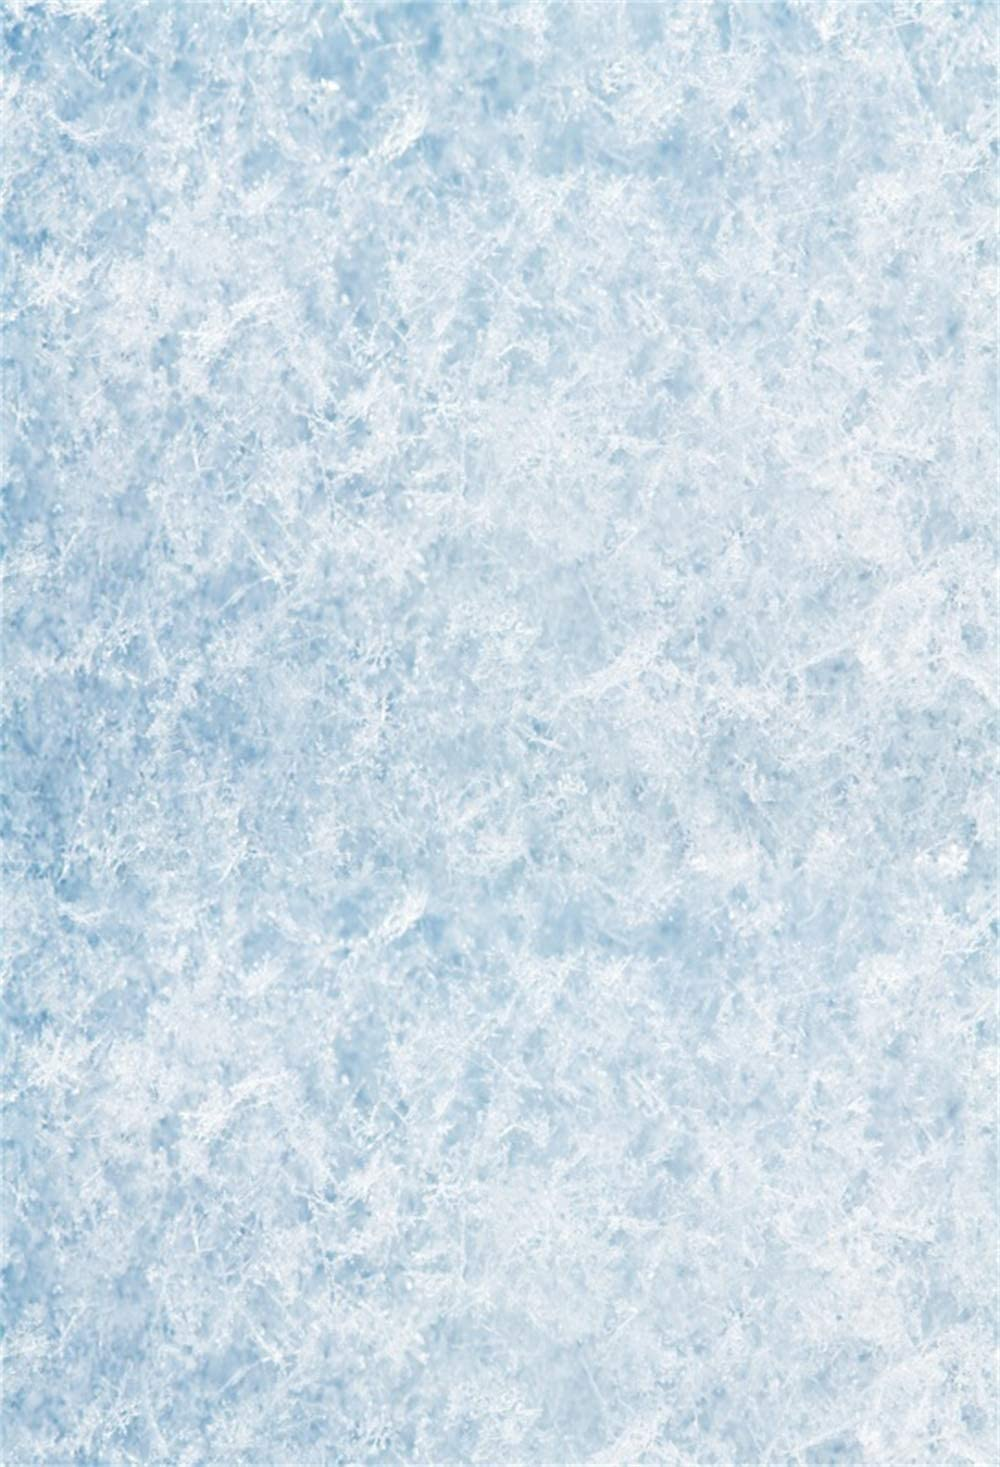 Laeacco 6.5x8ft Dreamy Abstract Bac Snowflakes Photography Lowest price challenge Vinyl Cheap SALE Start